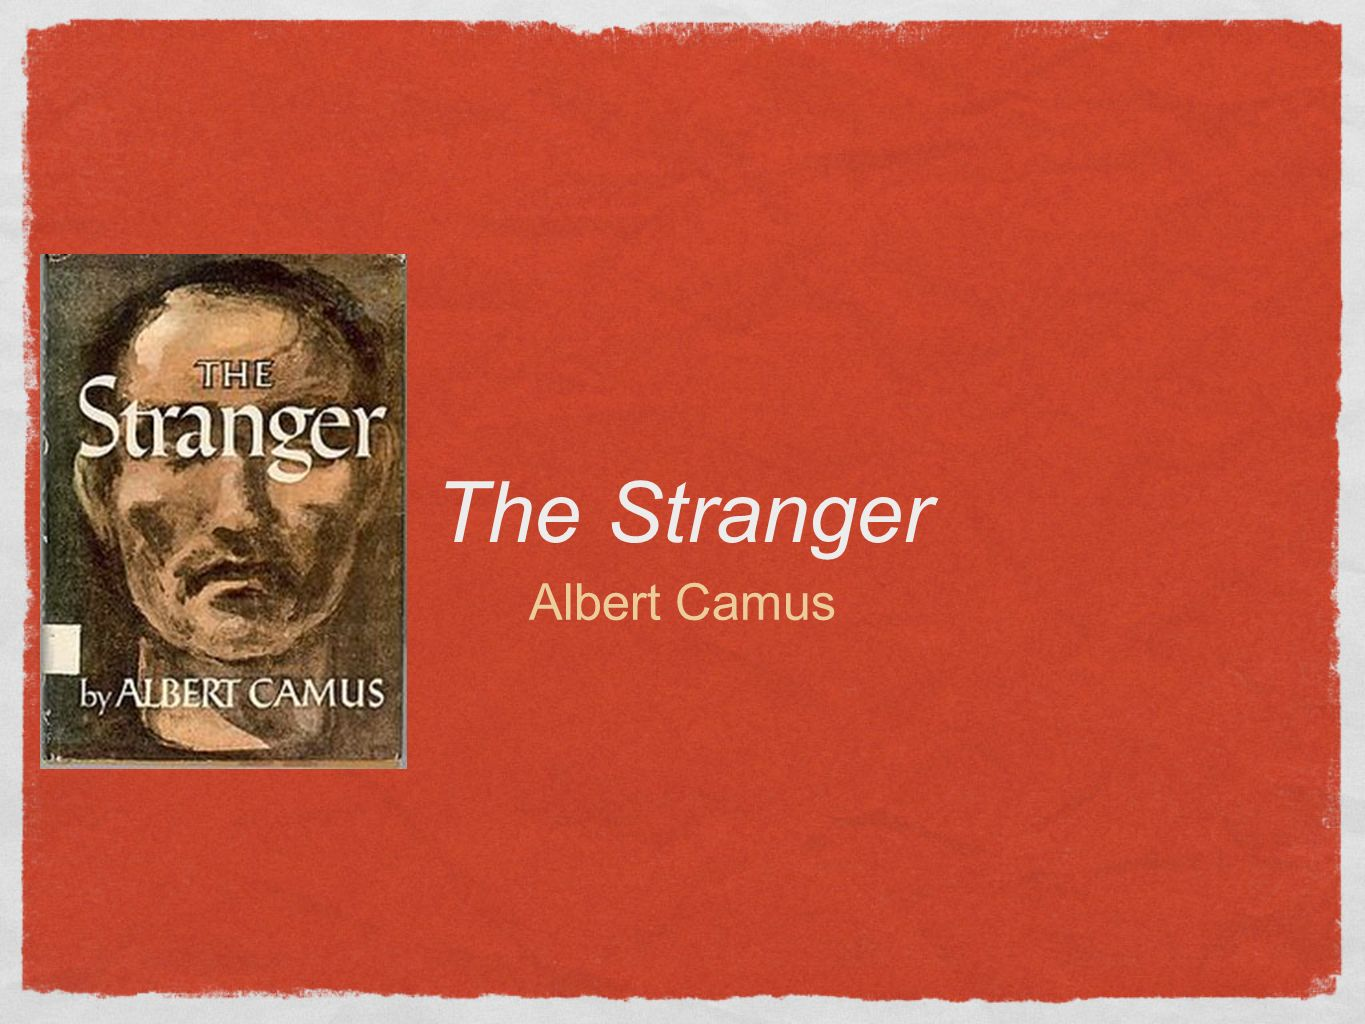 essay on the stranger by albert camus The stranger who had faith in the book to agree to its publication my four anonymous reviews editors at the journal of camus studies the project would have been lostpreface these essays before you are written by some of the world's leading authorities on the works and philosophy of albert camus.